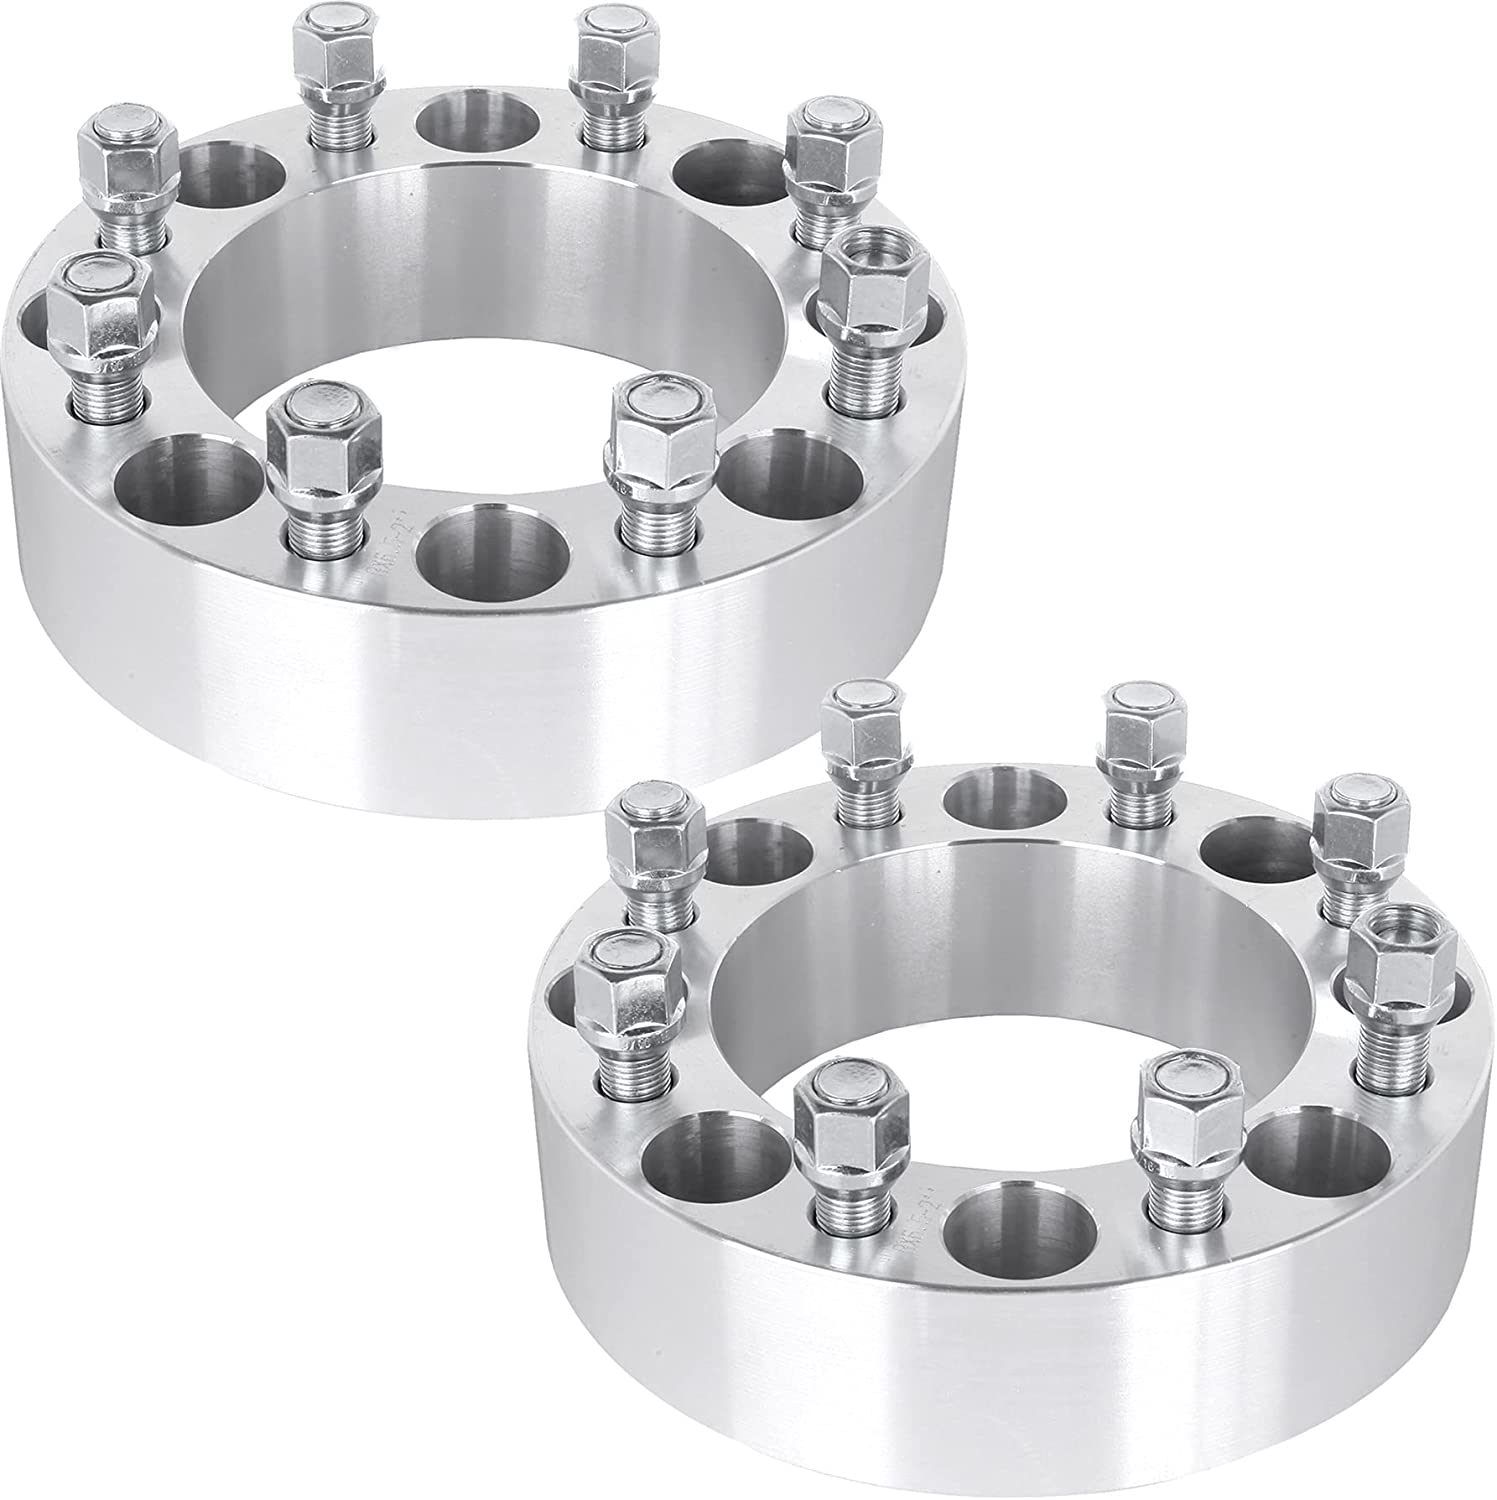 QUALINSIST Max 78% OFF Wheel Spacer 2 inch Adapters with Studs 1 9 16